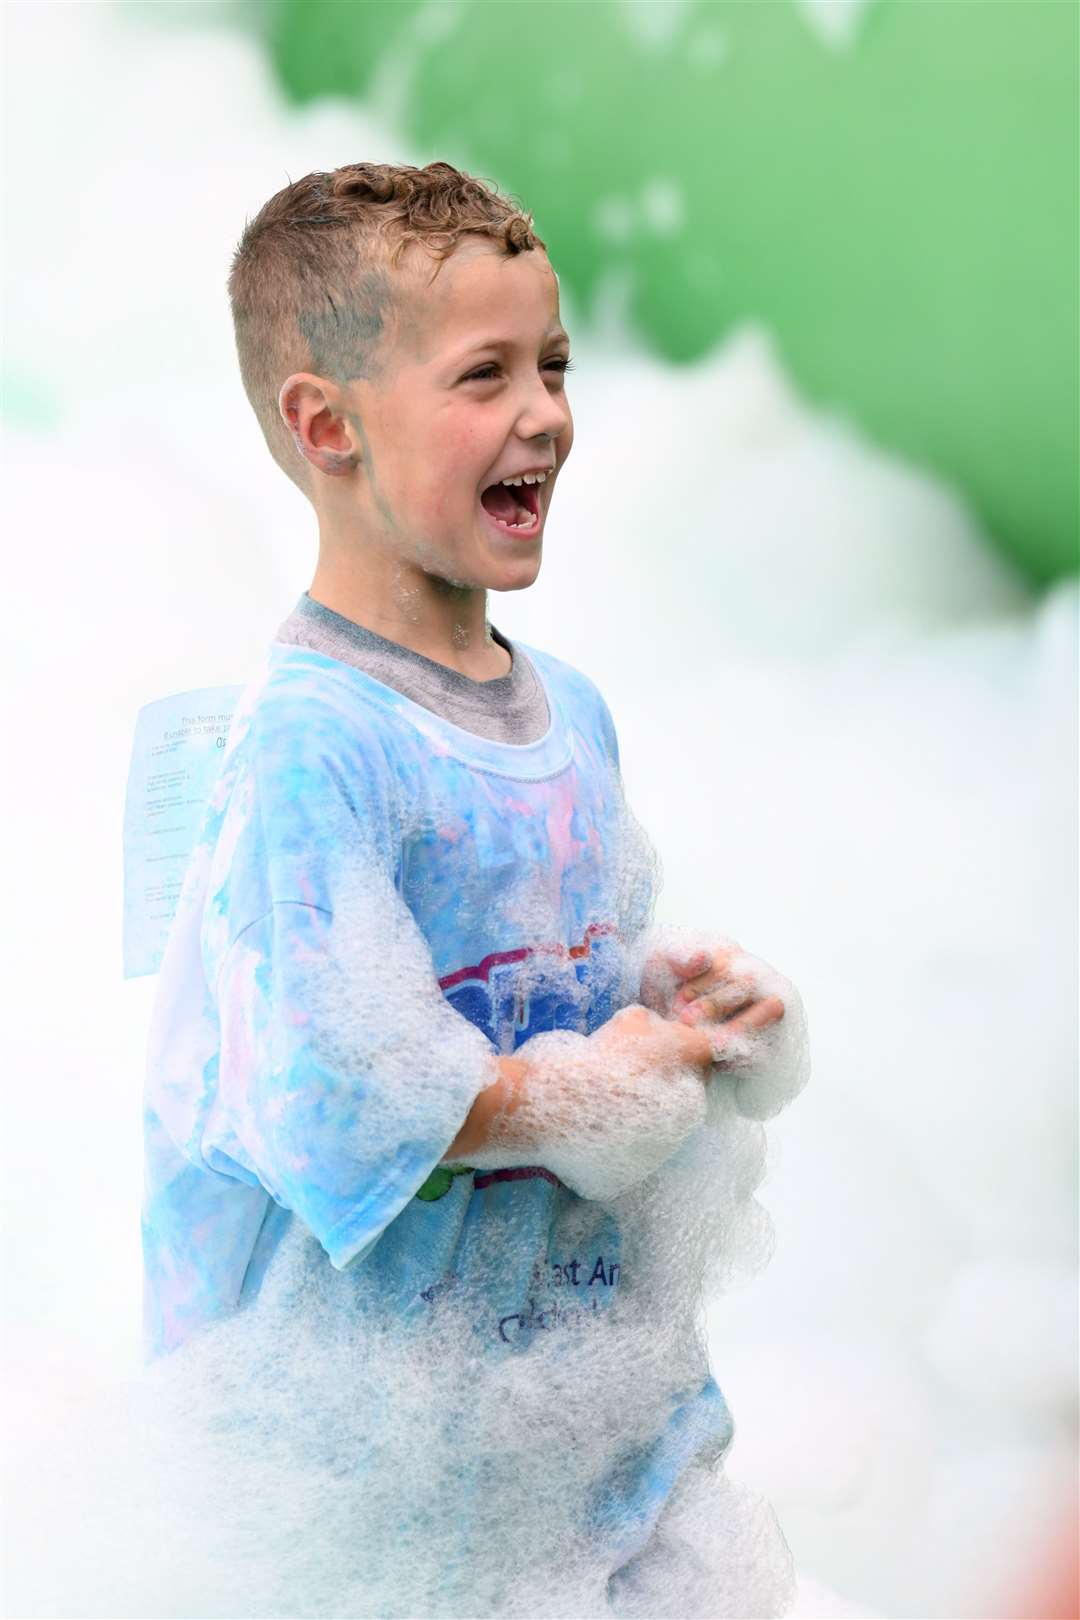 Bubble Rush at The Walks in Kings Lynn. MLNF-21AF09593